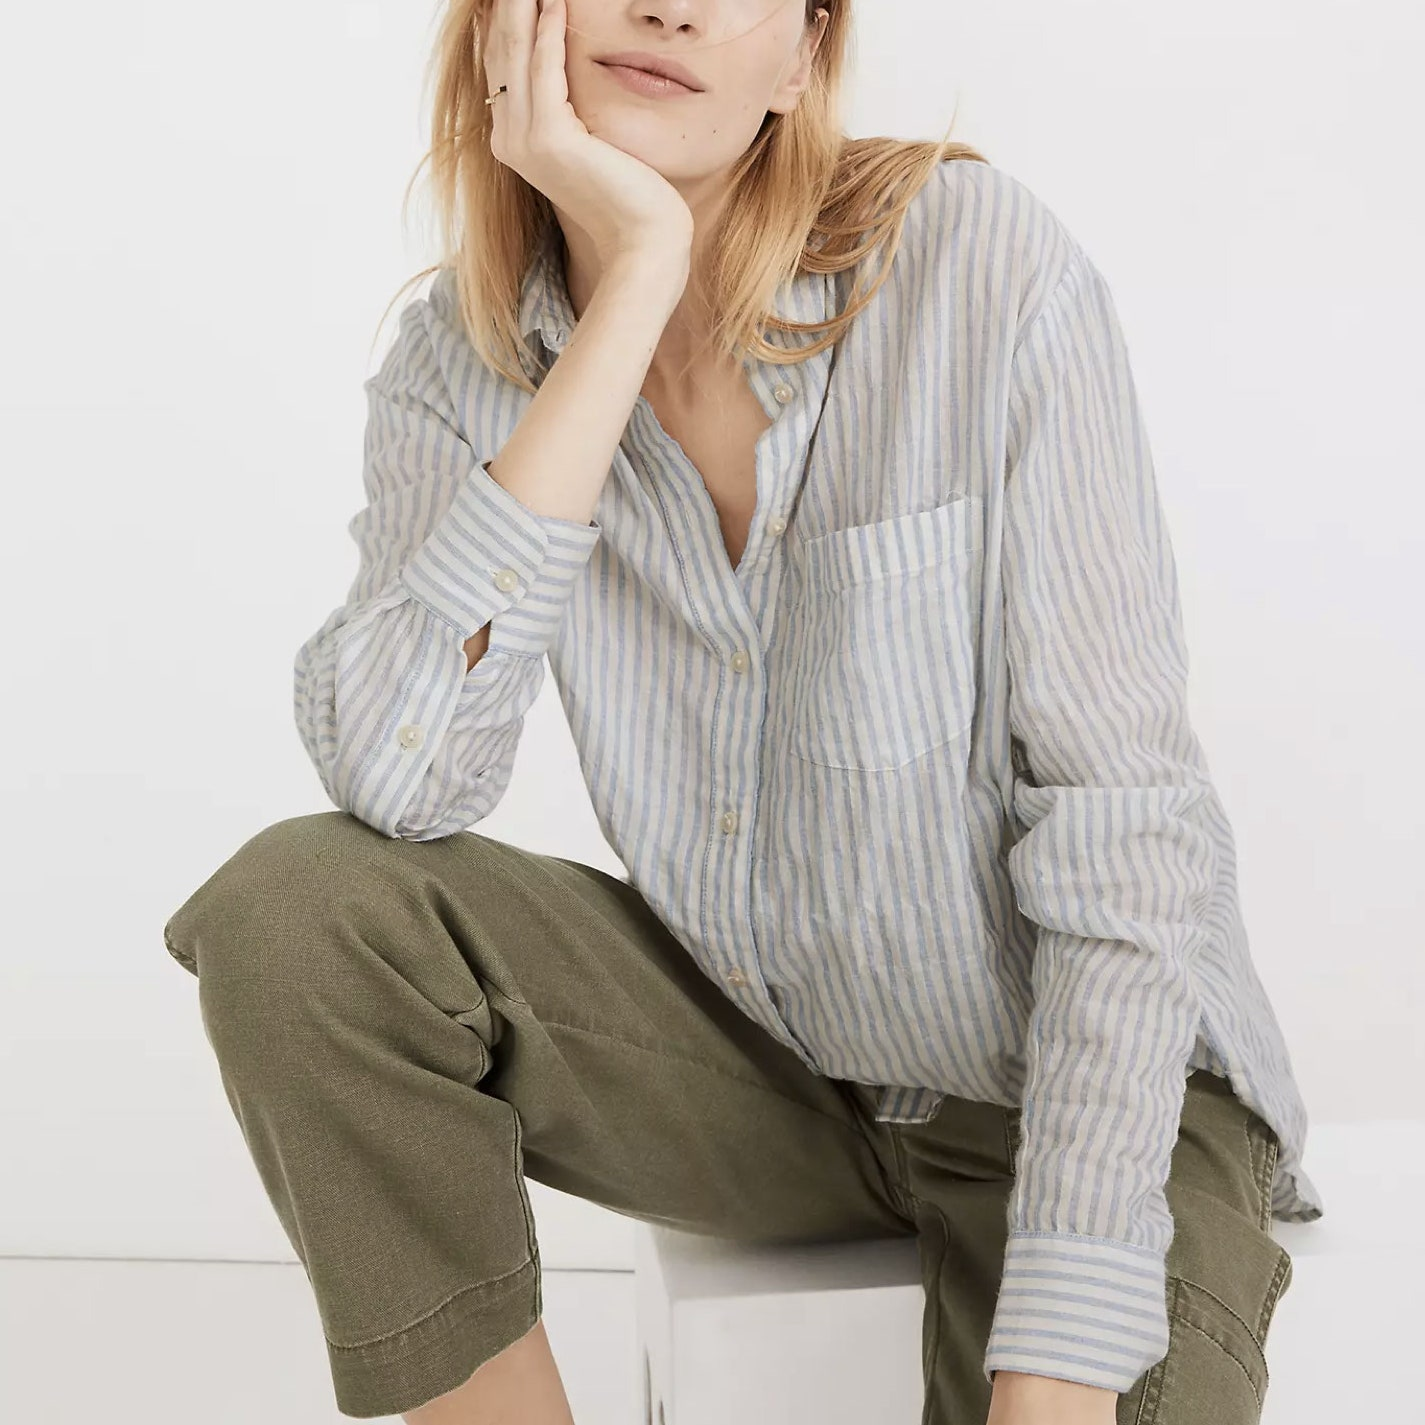 model wearing light blue and white striped button down shirt